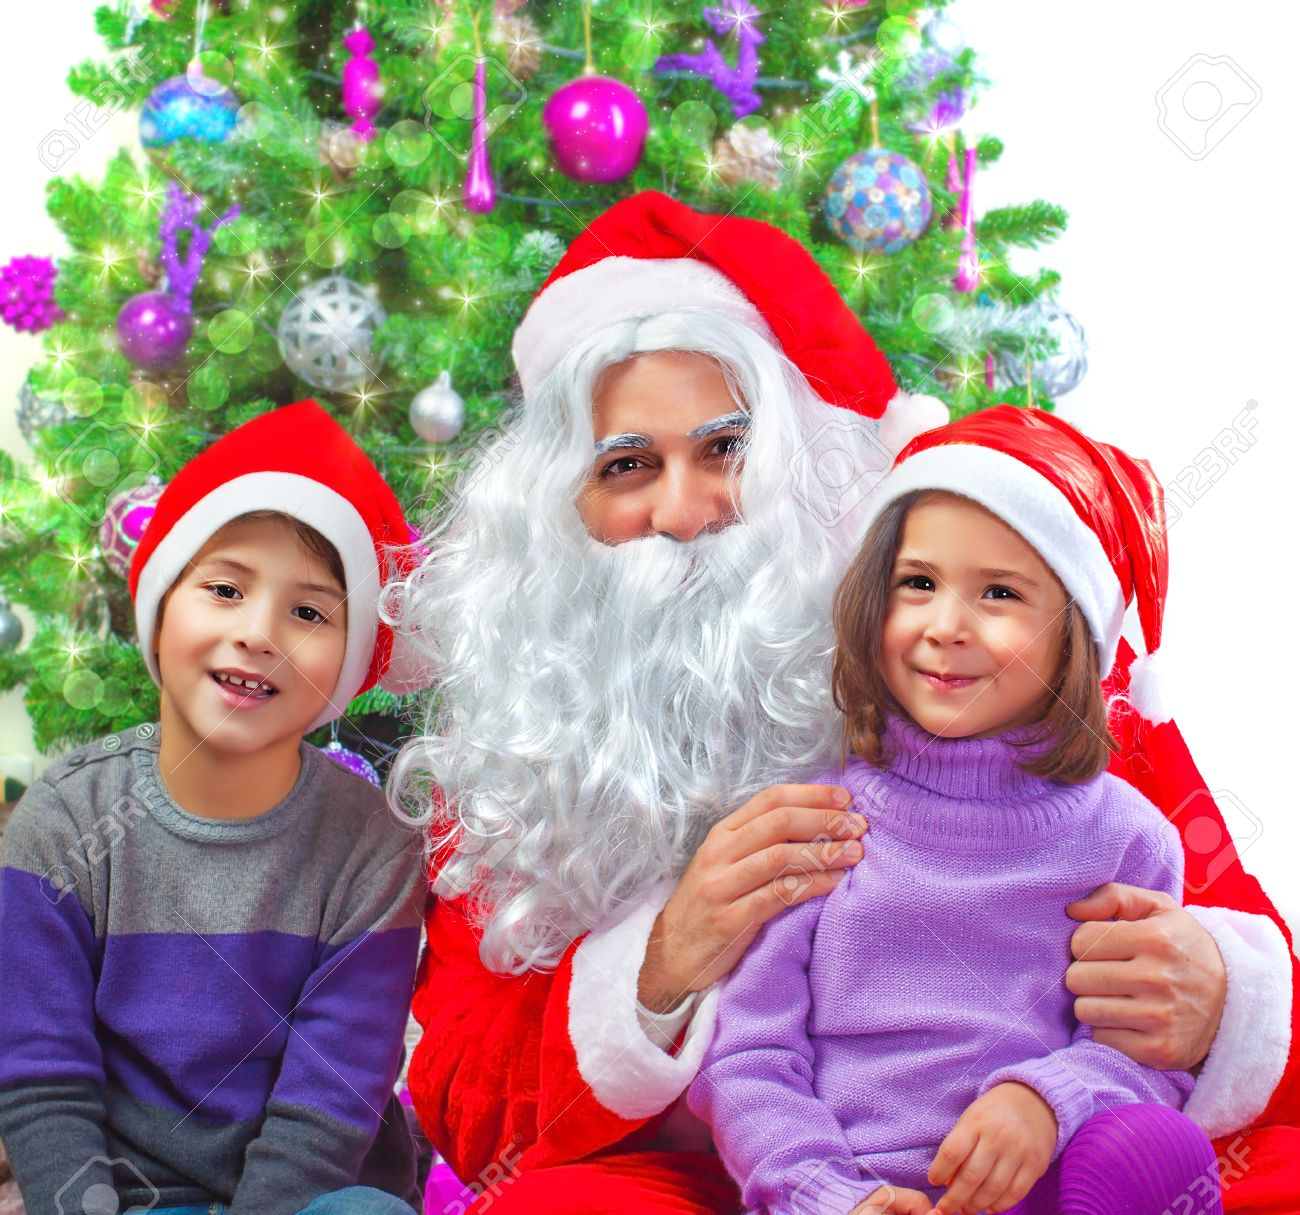 Portrait of two adorable kids sitting with Santa Claus at home near Christmas tree, winter holidays, New Year party, festive decorations, fun concept Stock Photo - 22483564